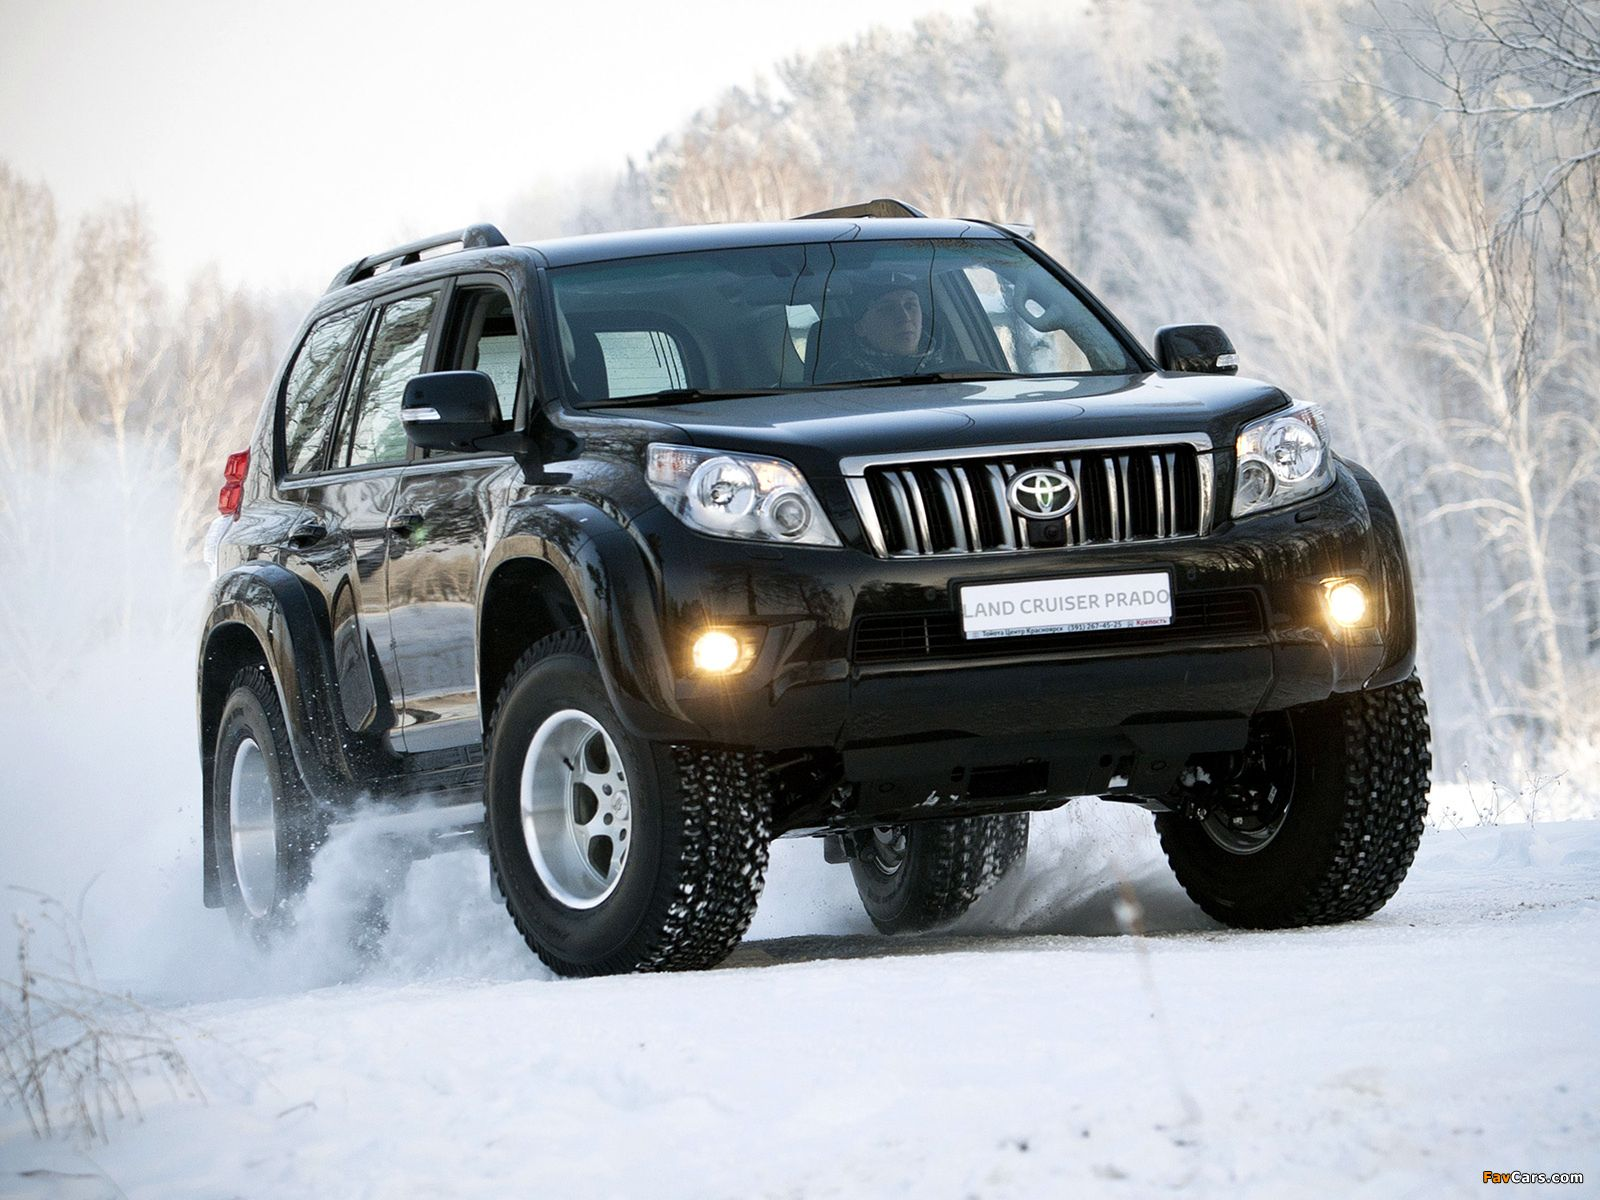 Arctic trucksing it right cars trucks mud and ice arctic trucks toyota land cruiser prado 2010 photos x sciox Choice Image